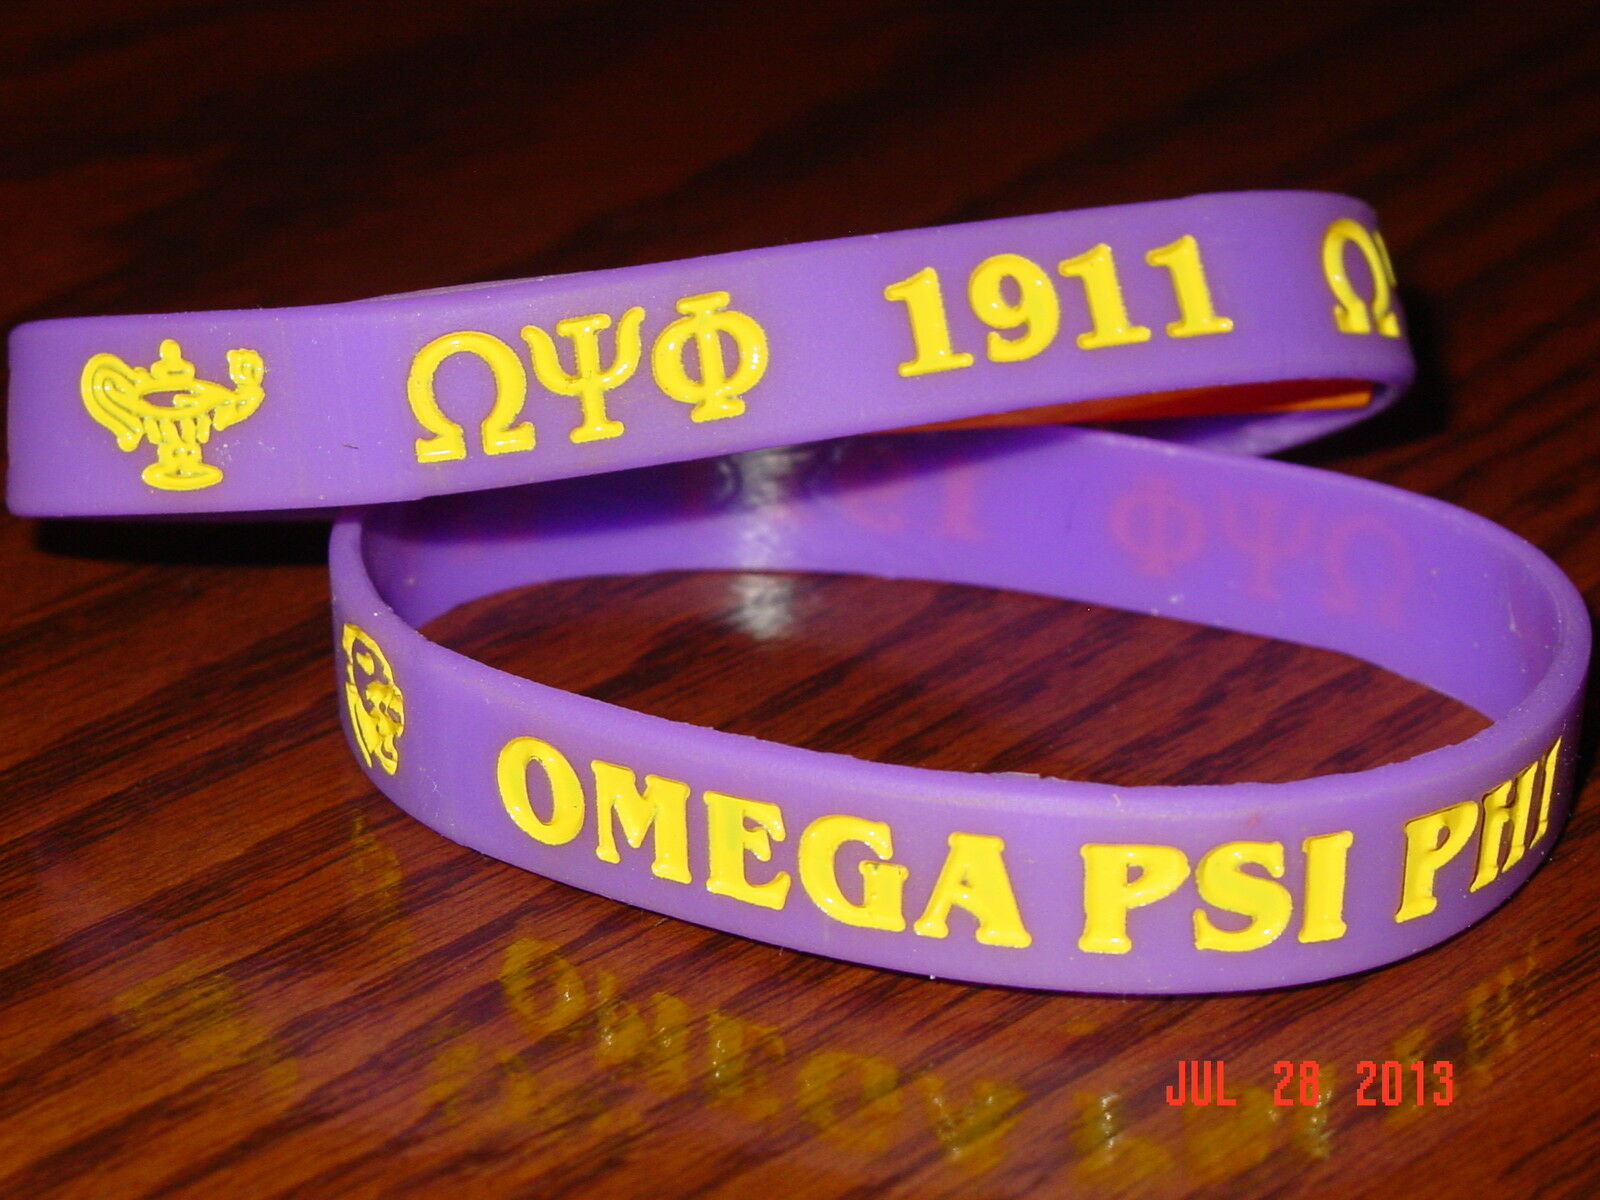 Omega psi phi fraternity ebay omega psi phi greek fraternity wristbands buycottarizona Image collections